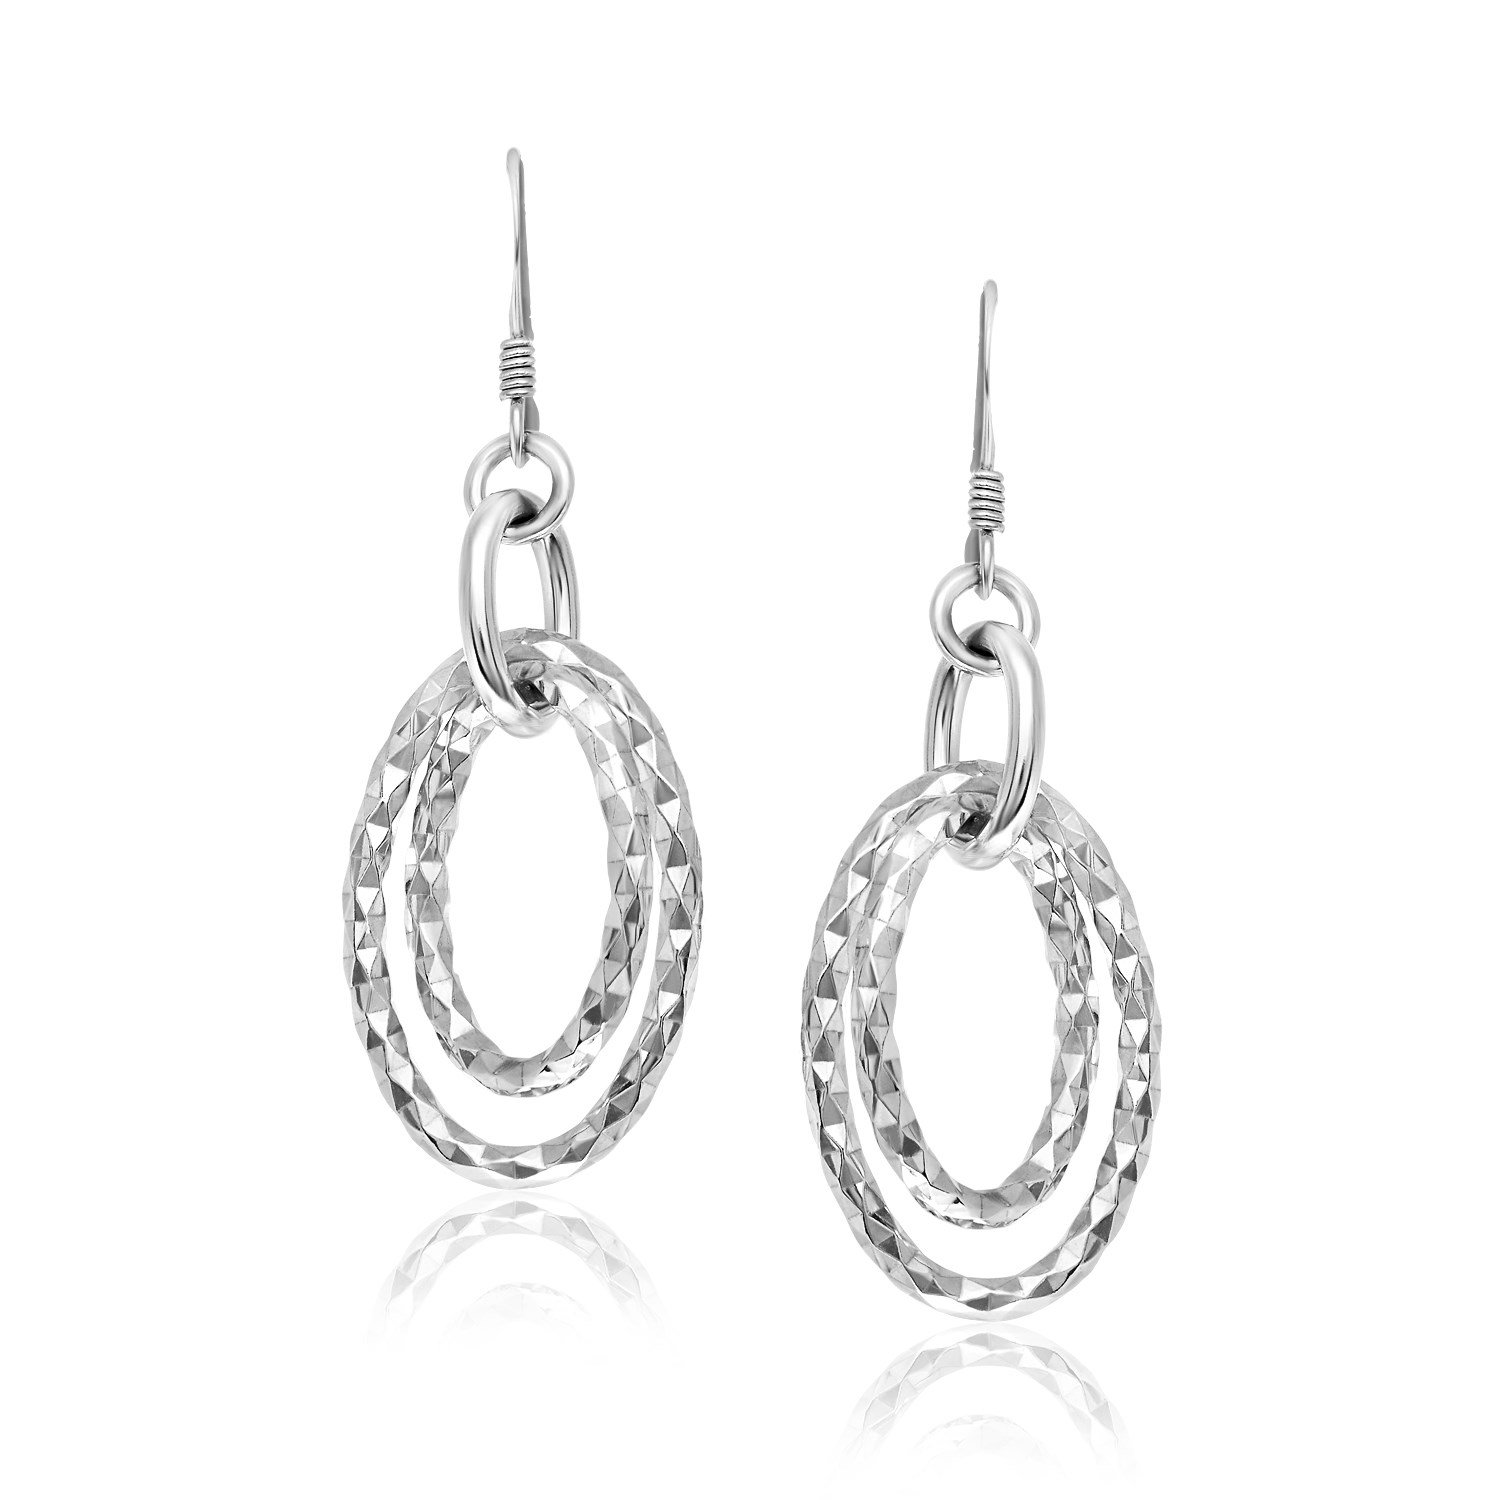 Sterling Silver Textured Dual Open Oval Style Dangling Earrings by Jewels By Lux